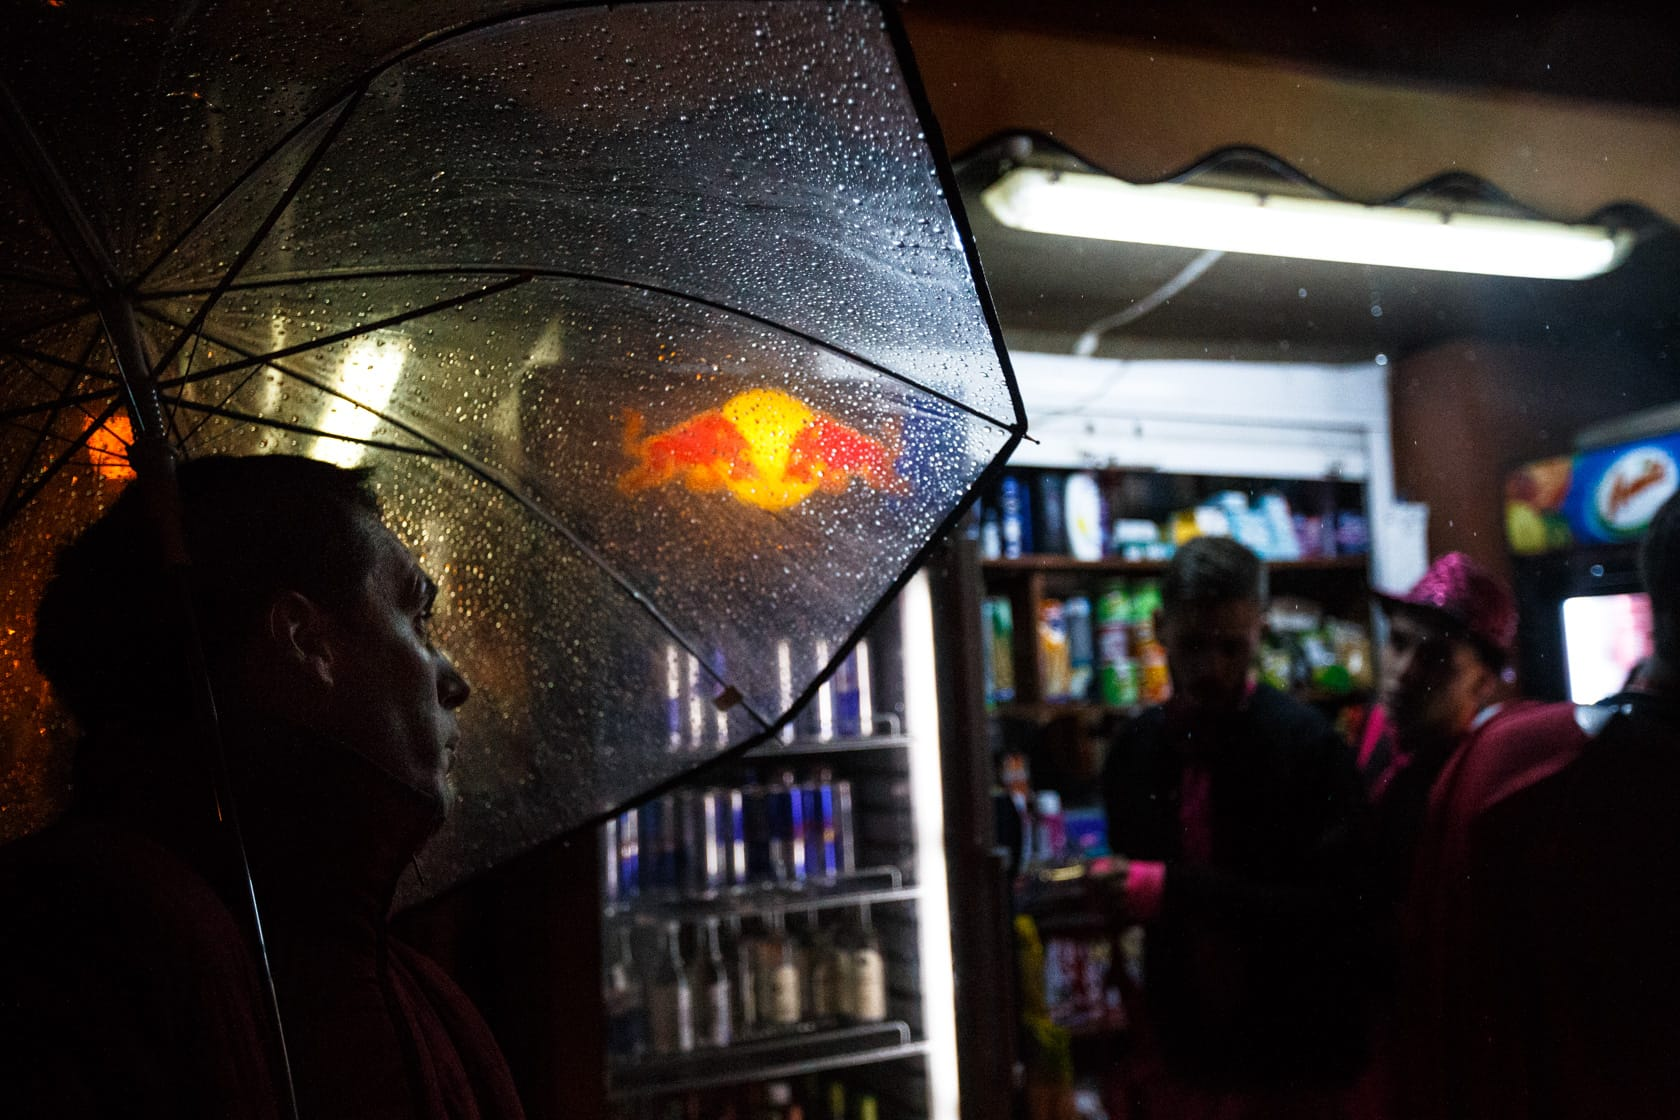 Top Tips for Street Photography in Rain & Bad Weather